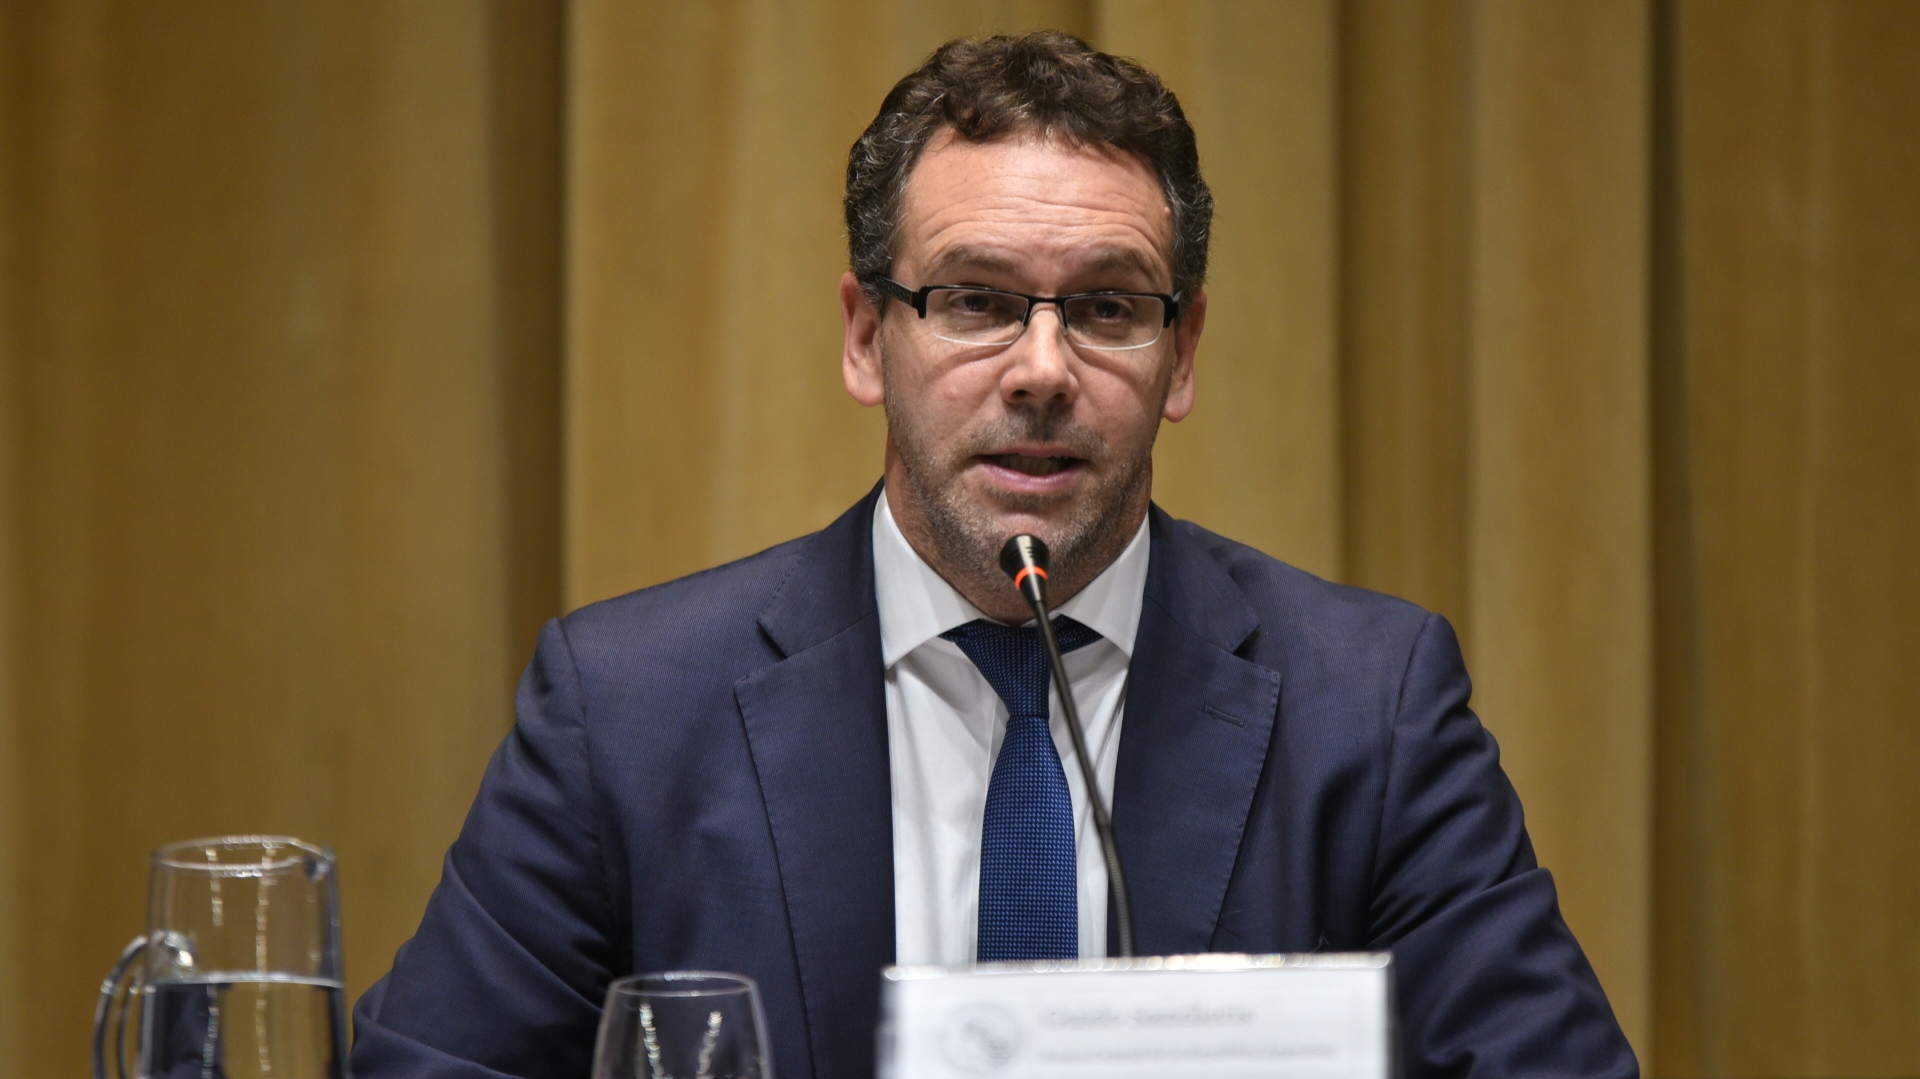 Guido Sandleris, presidente del Banco Central (Manuel Cortina)